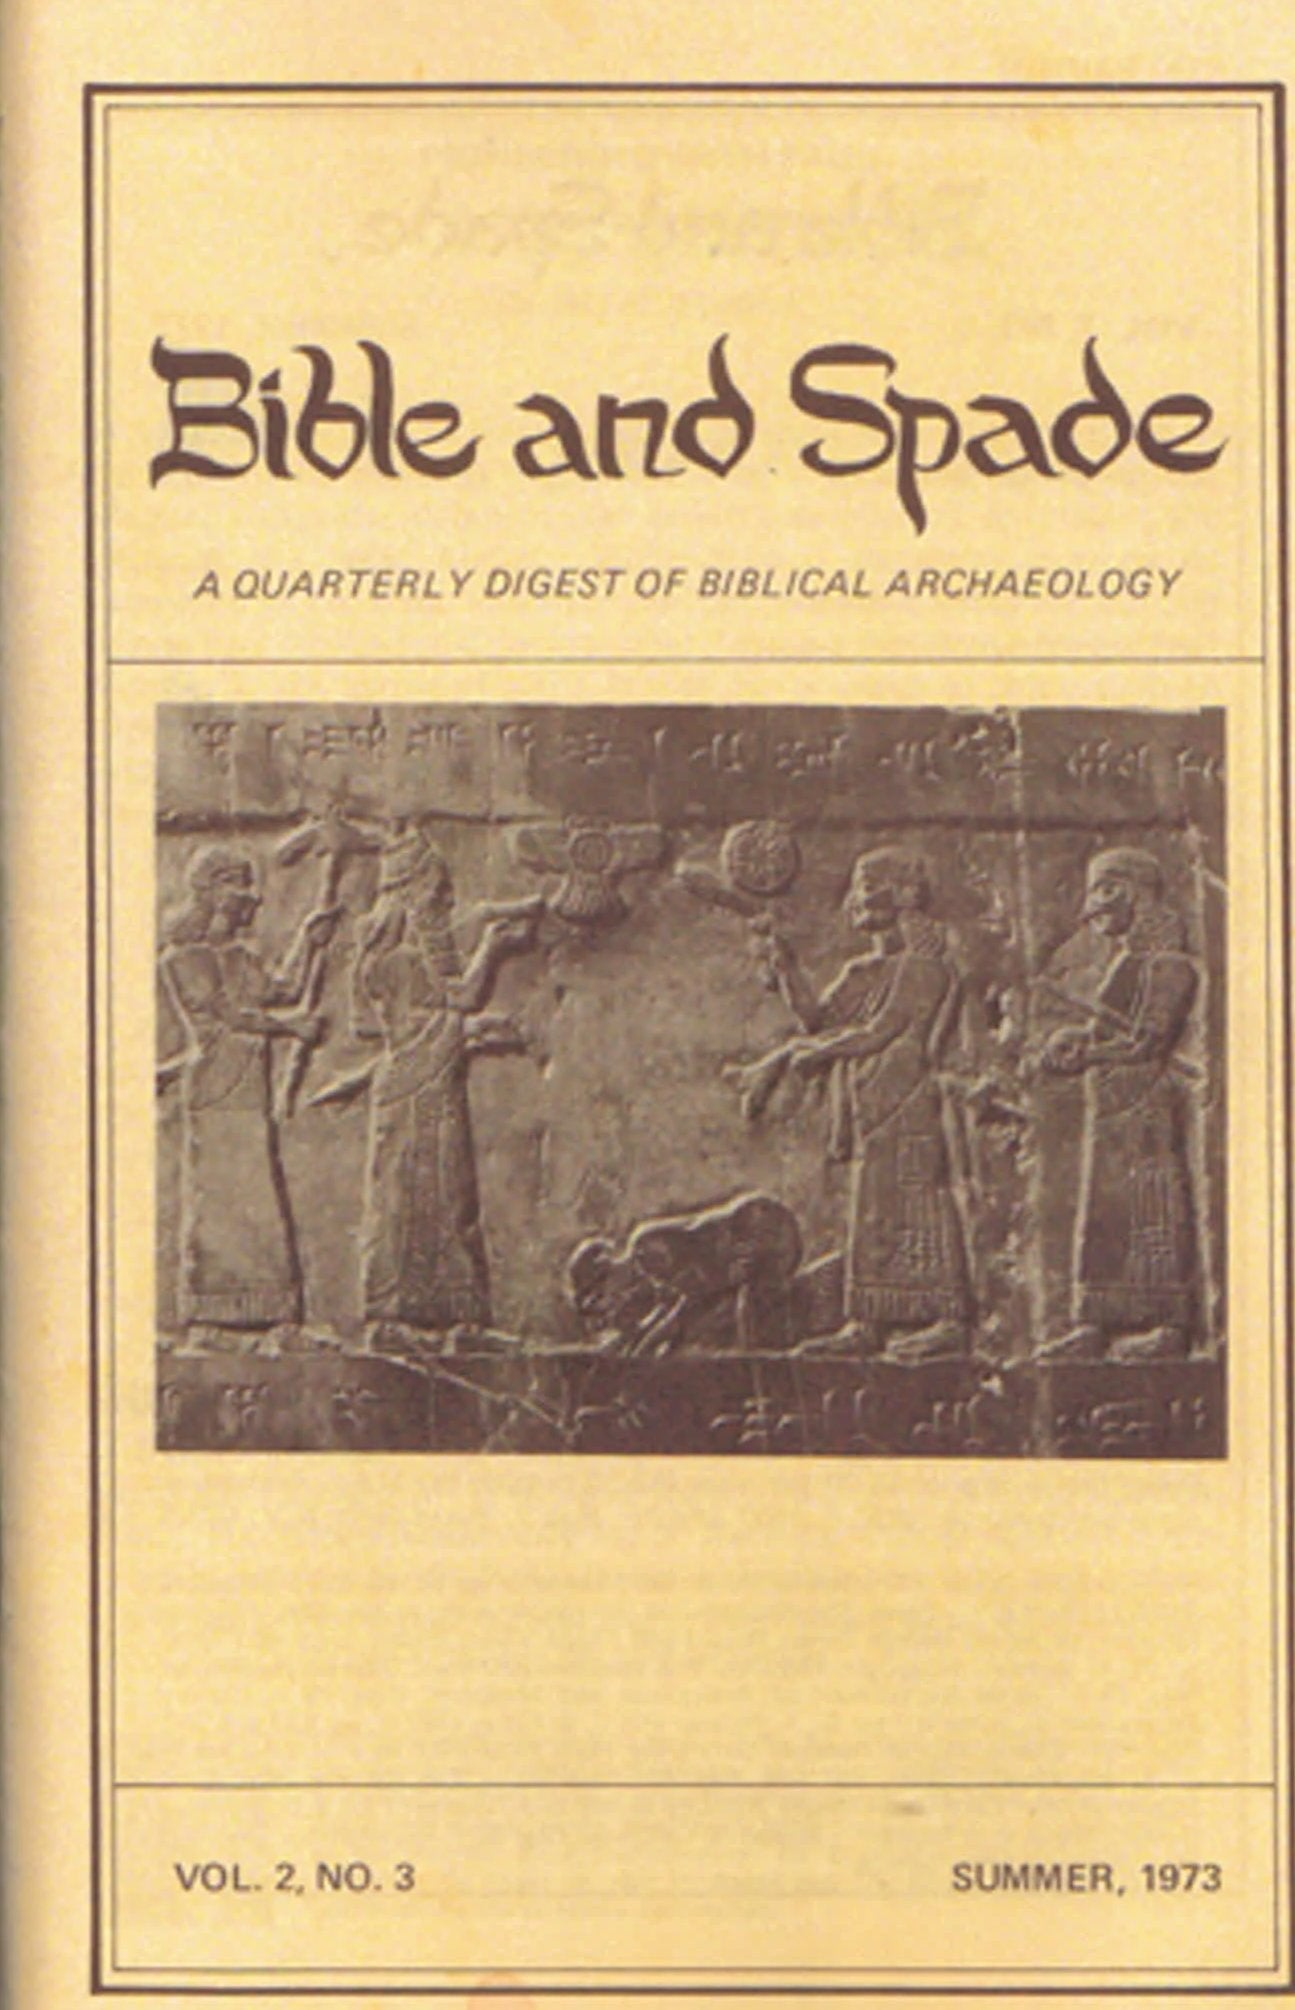 Four issues of BIBLE and SPADE produced in 1973